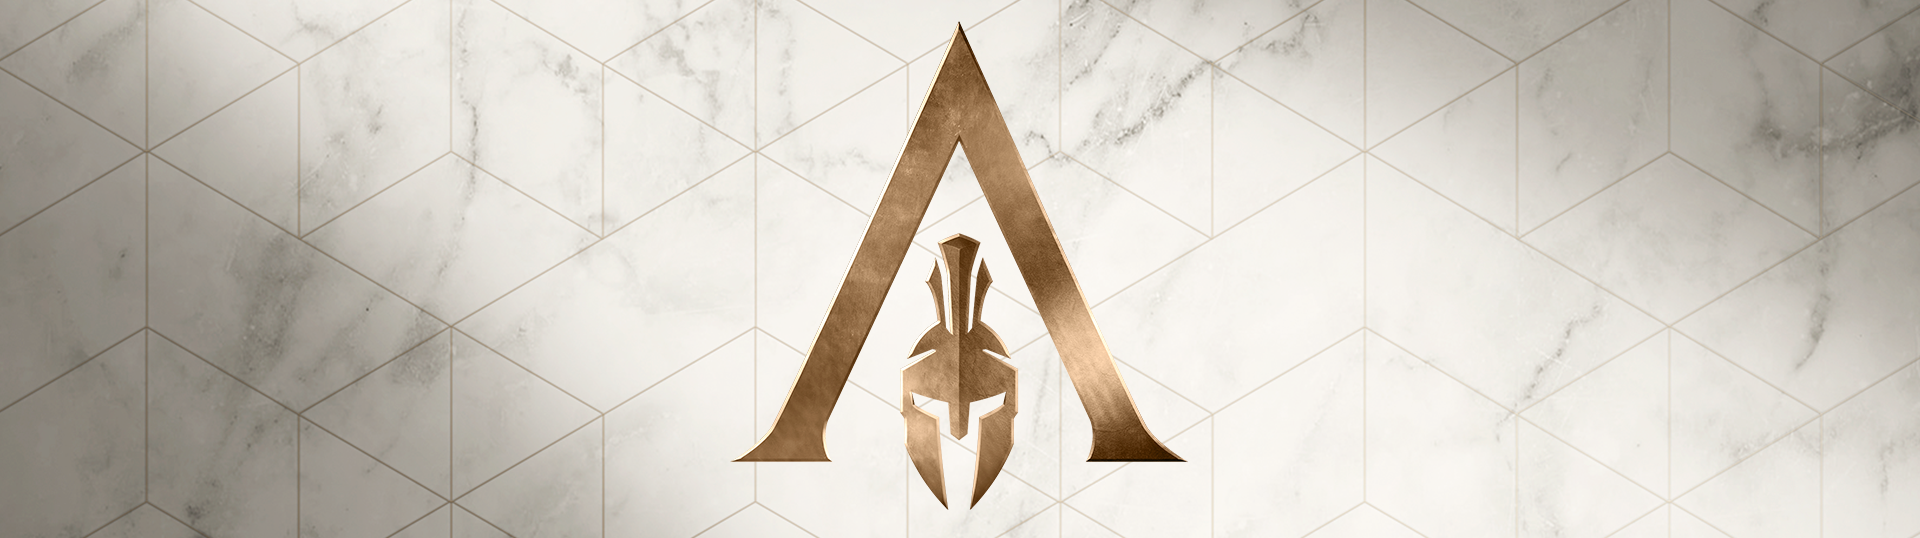 Assassin's Creed: Odyssey logo header